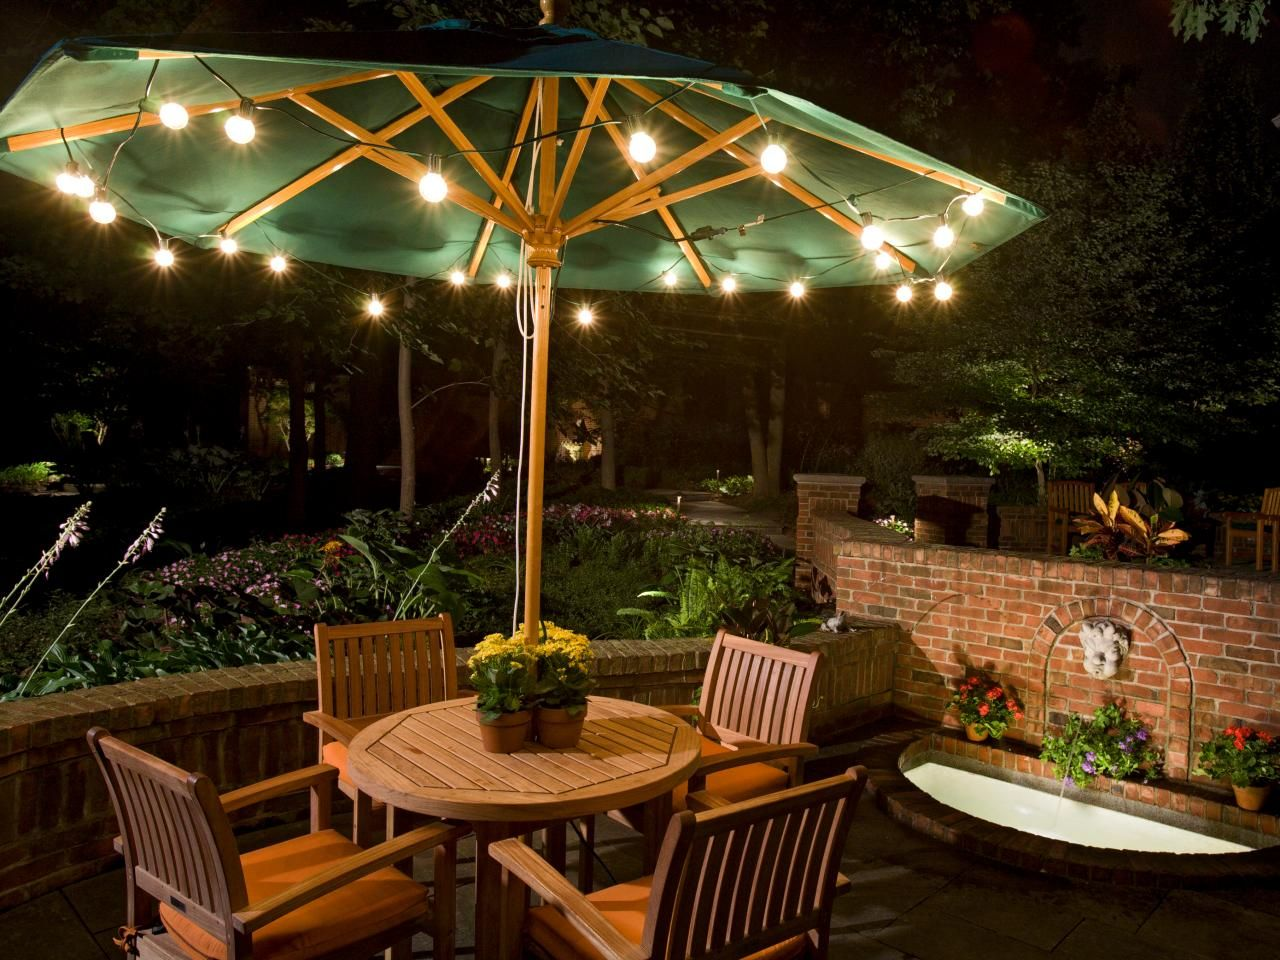 Nice Outdoor Patio Lights: Eat Dinner In A Warm Atmosphere